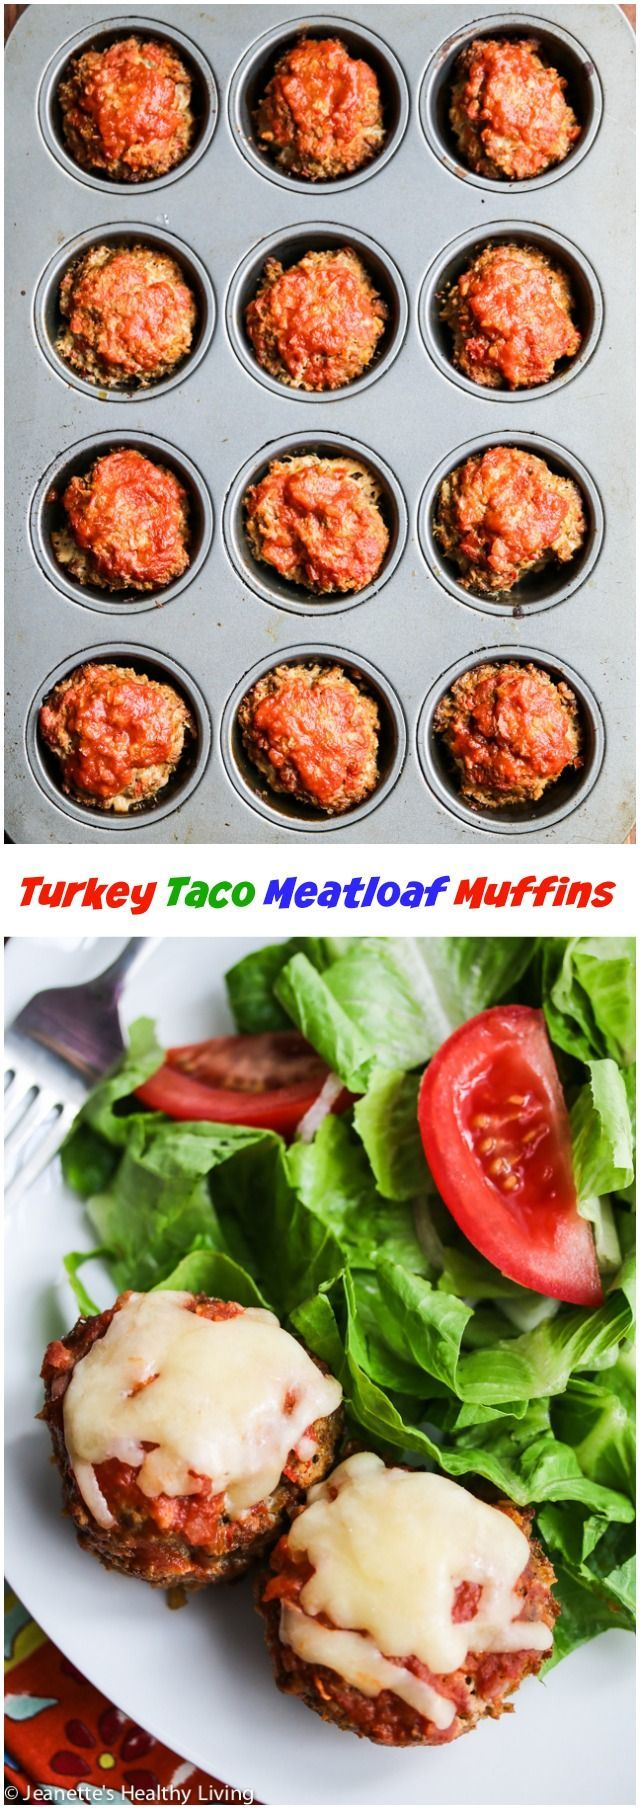 Kid Friendly Turkey Meatloaf Muffins